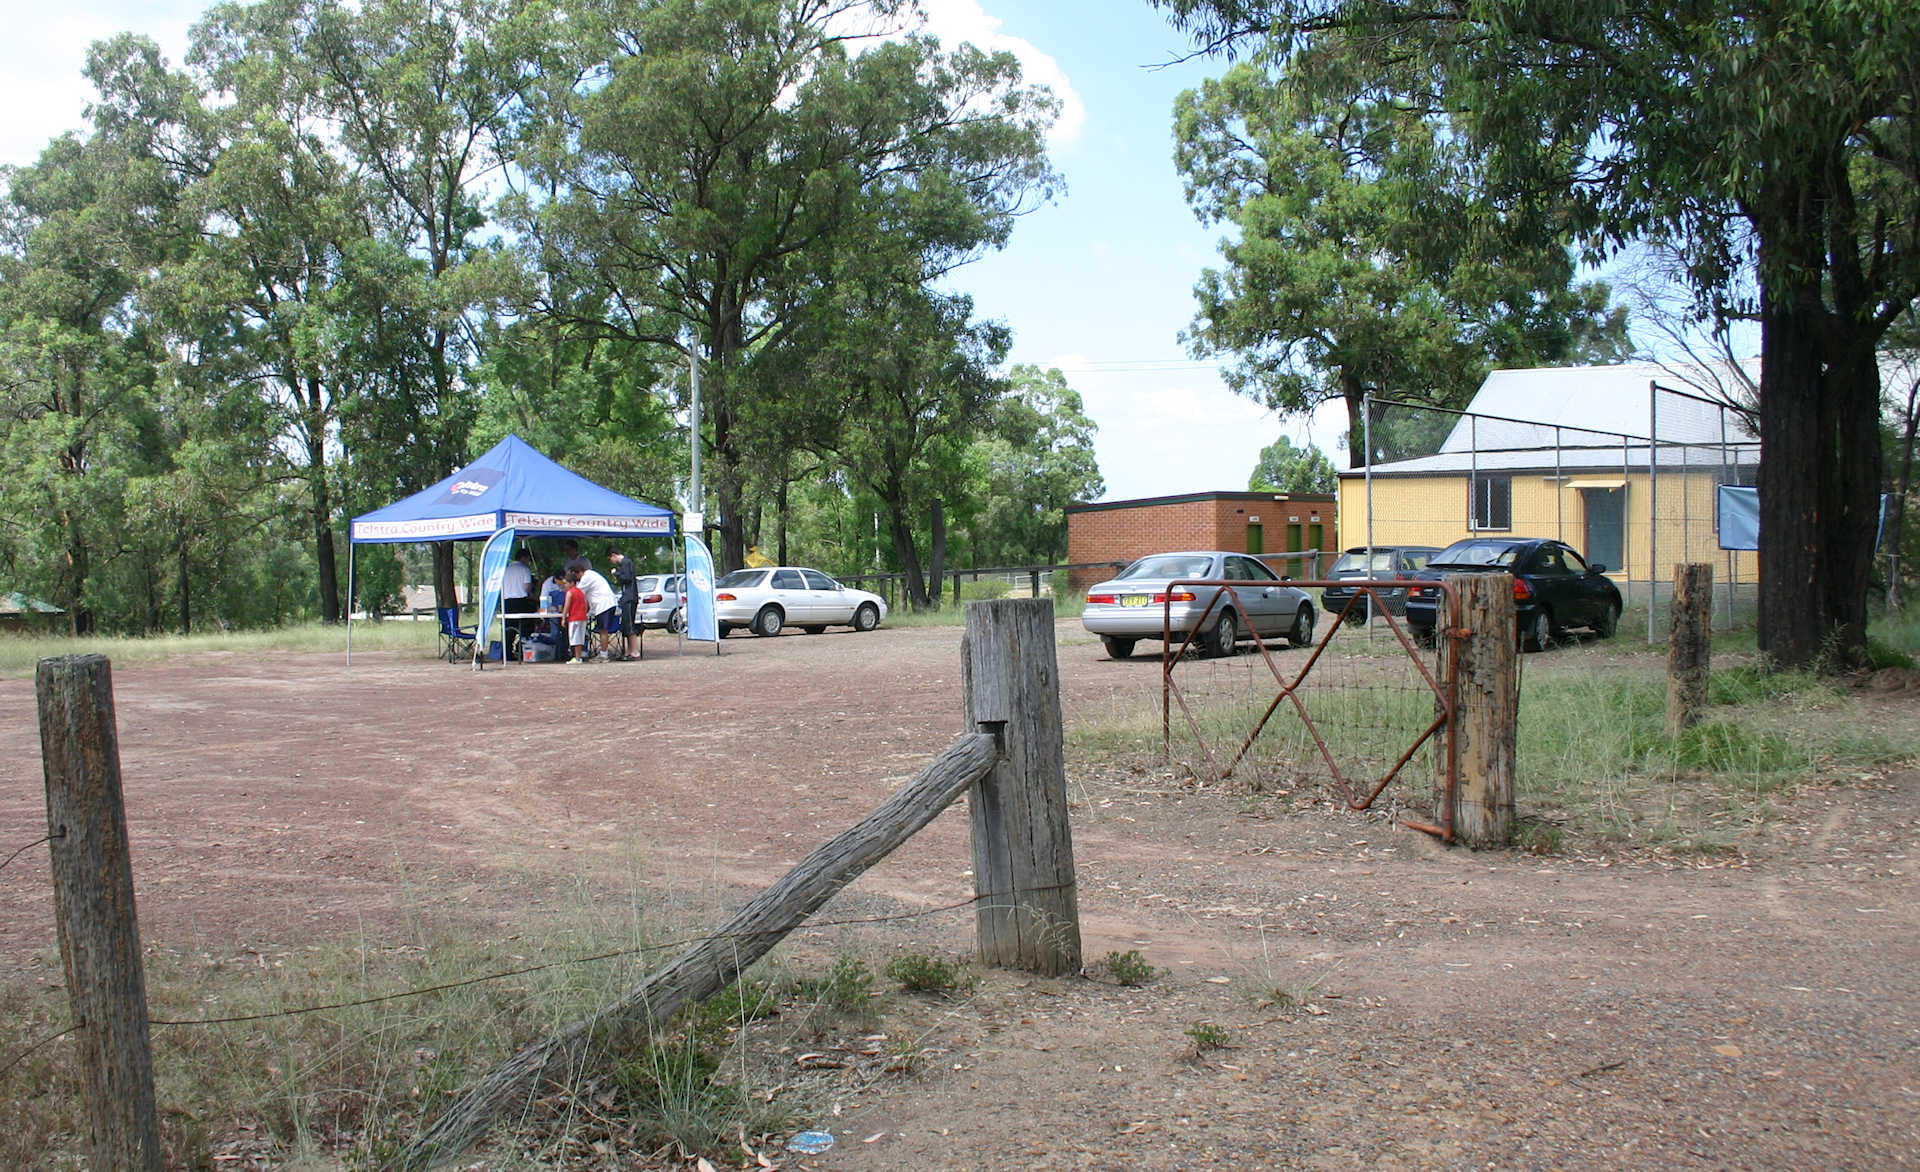 Tent offering broadband services in Stanley Park, East Kurrajong, 2006